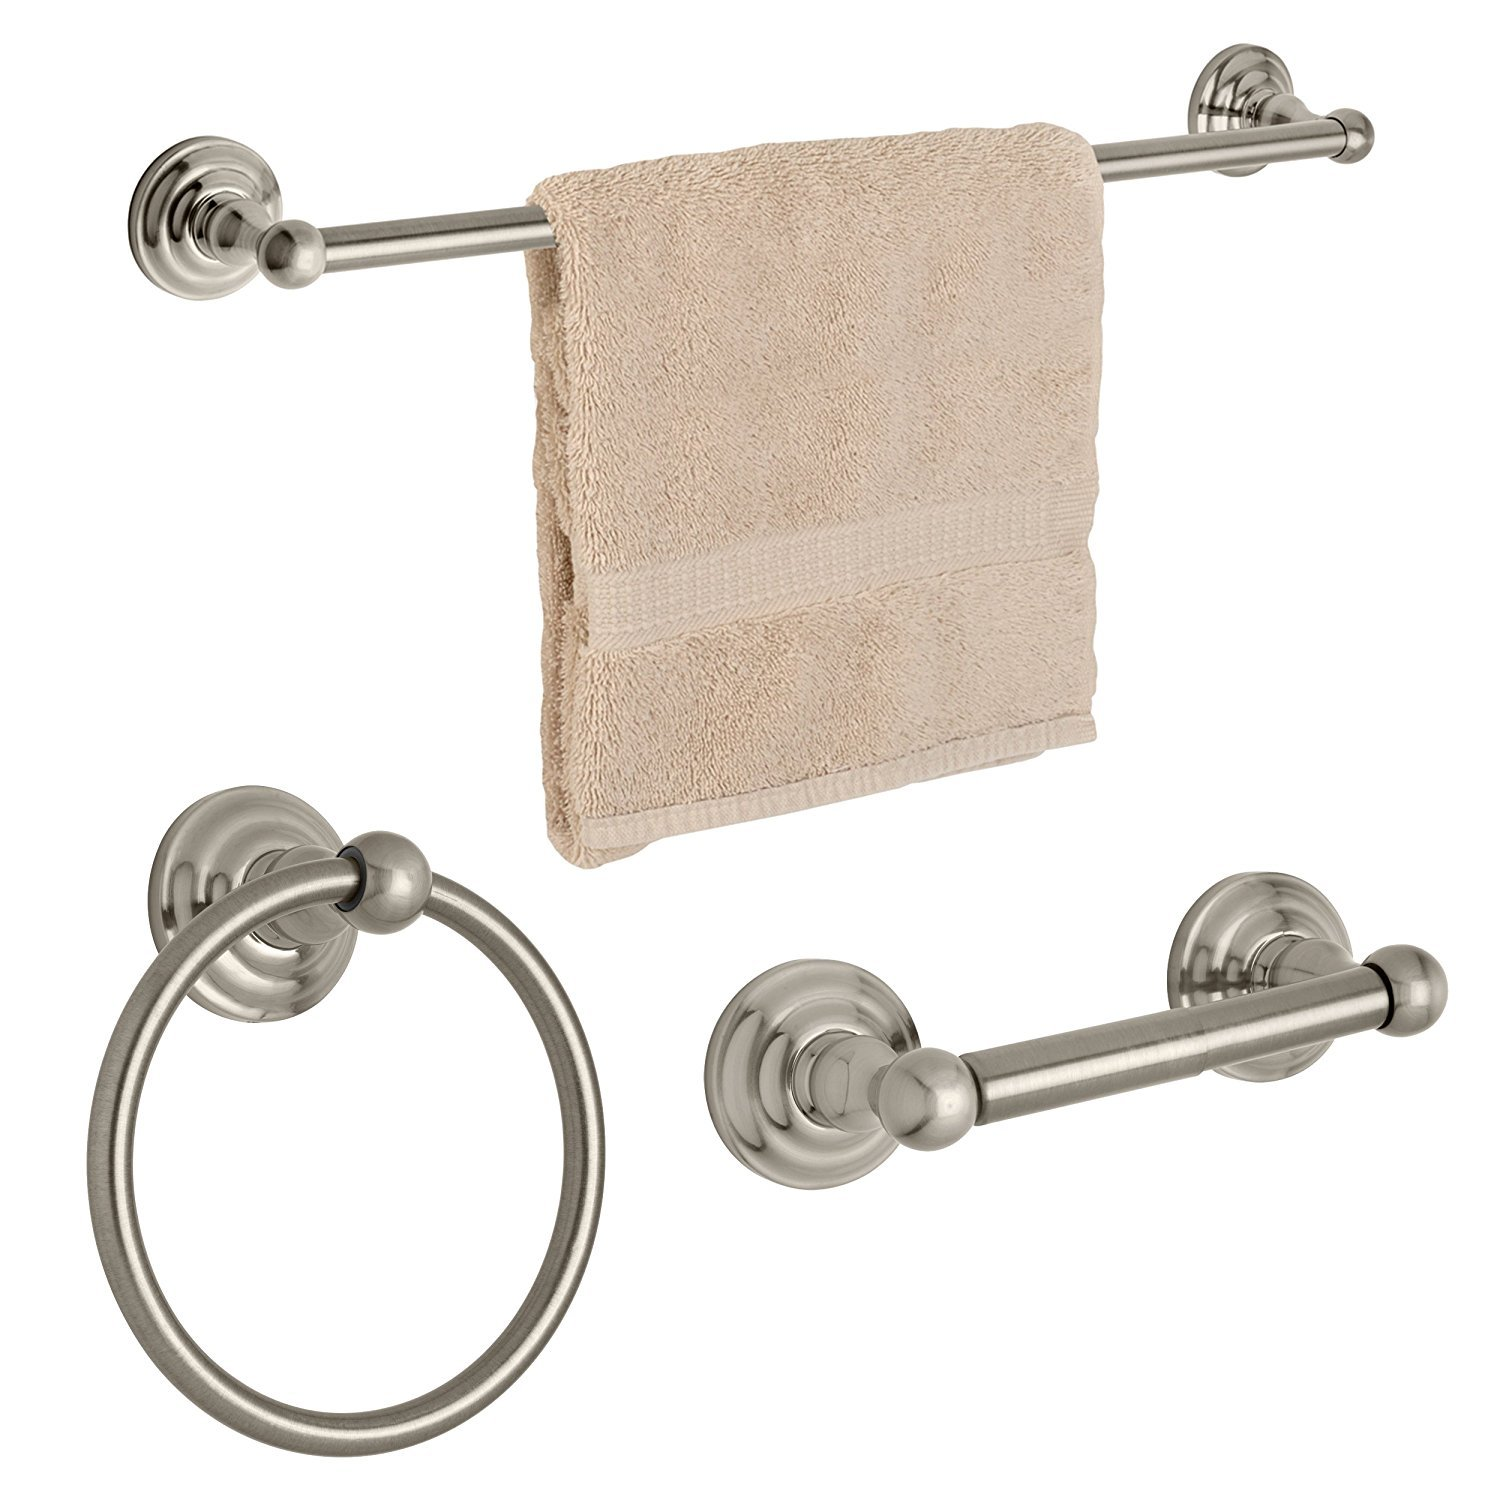 Dynasty Hardware 3800-SN-3PC Palisades Series Bathroom Hardware Set, Satin Nickel, 3-Piece Set, With 24 Towel Bar With 24 Towel Bar DYN-3800-SN-3